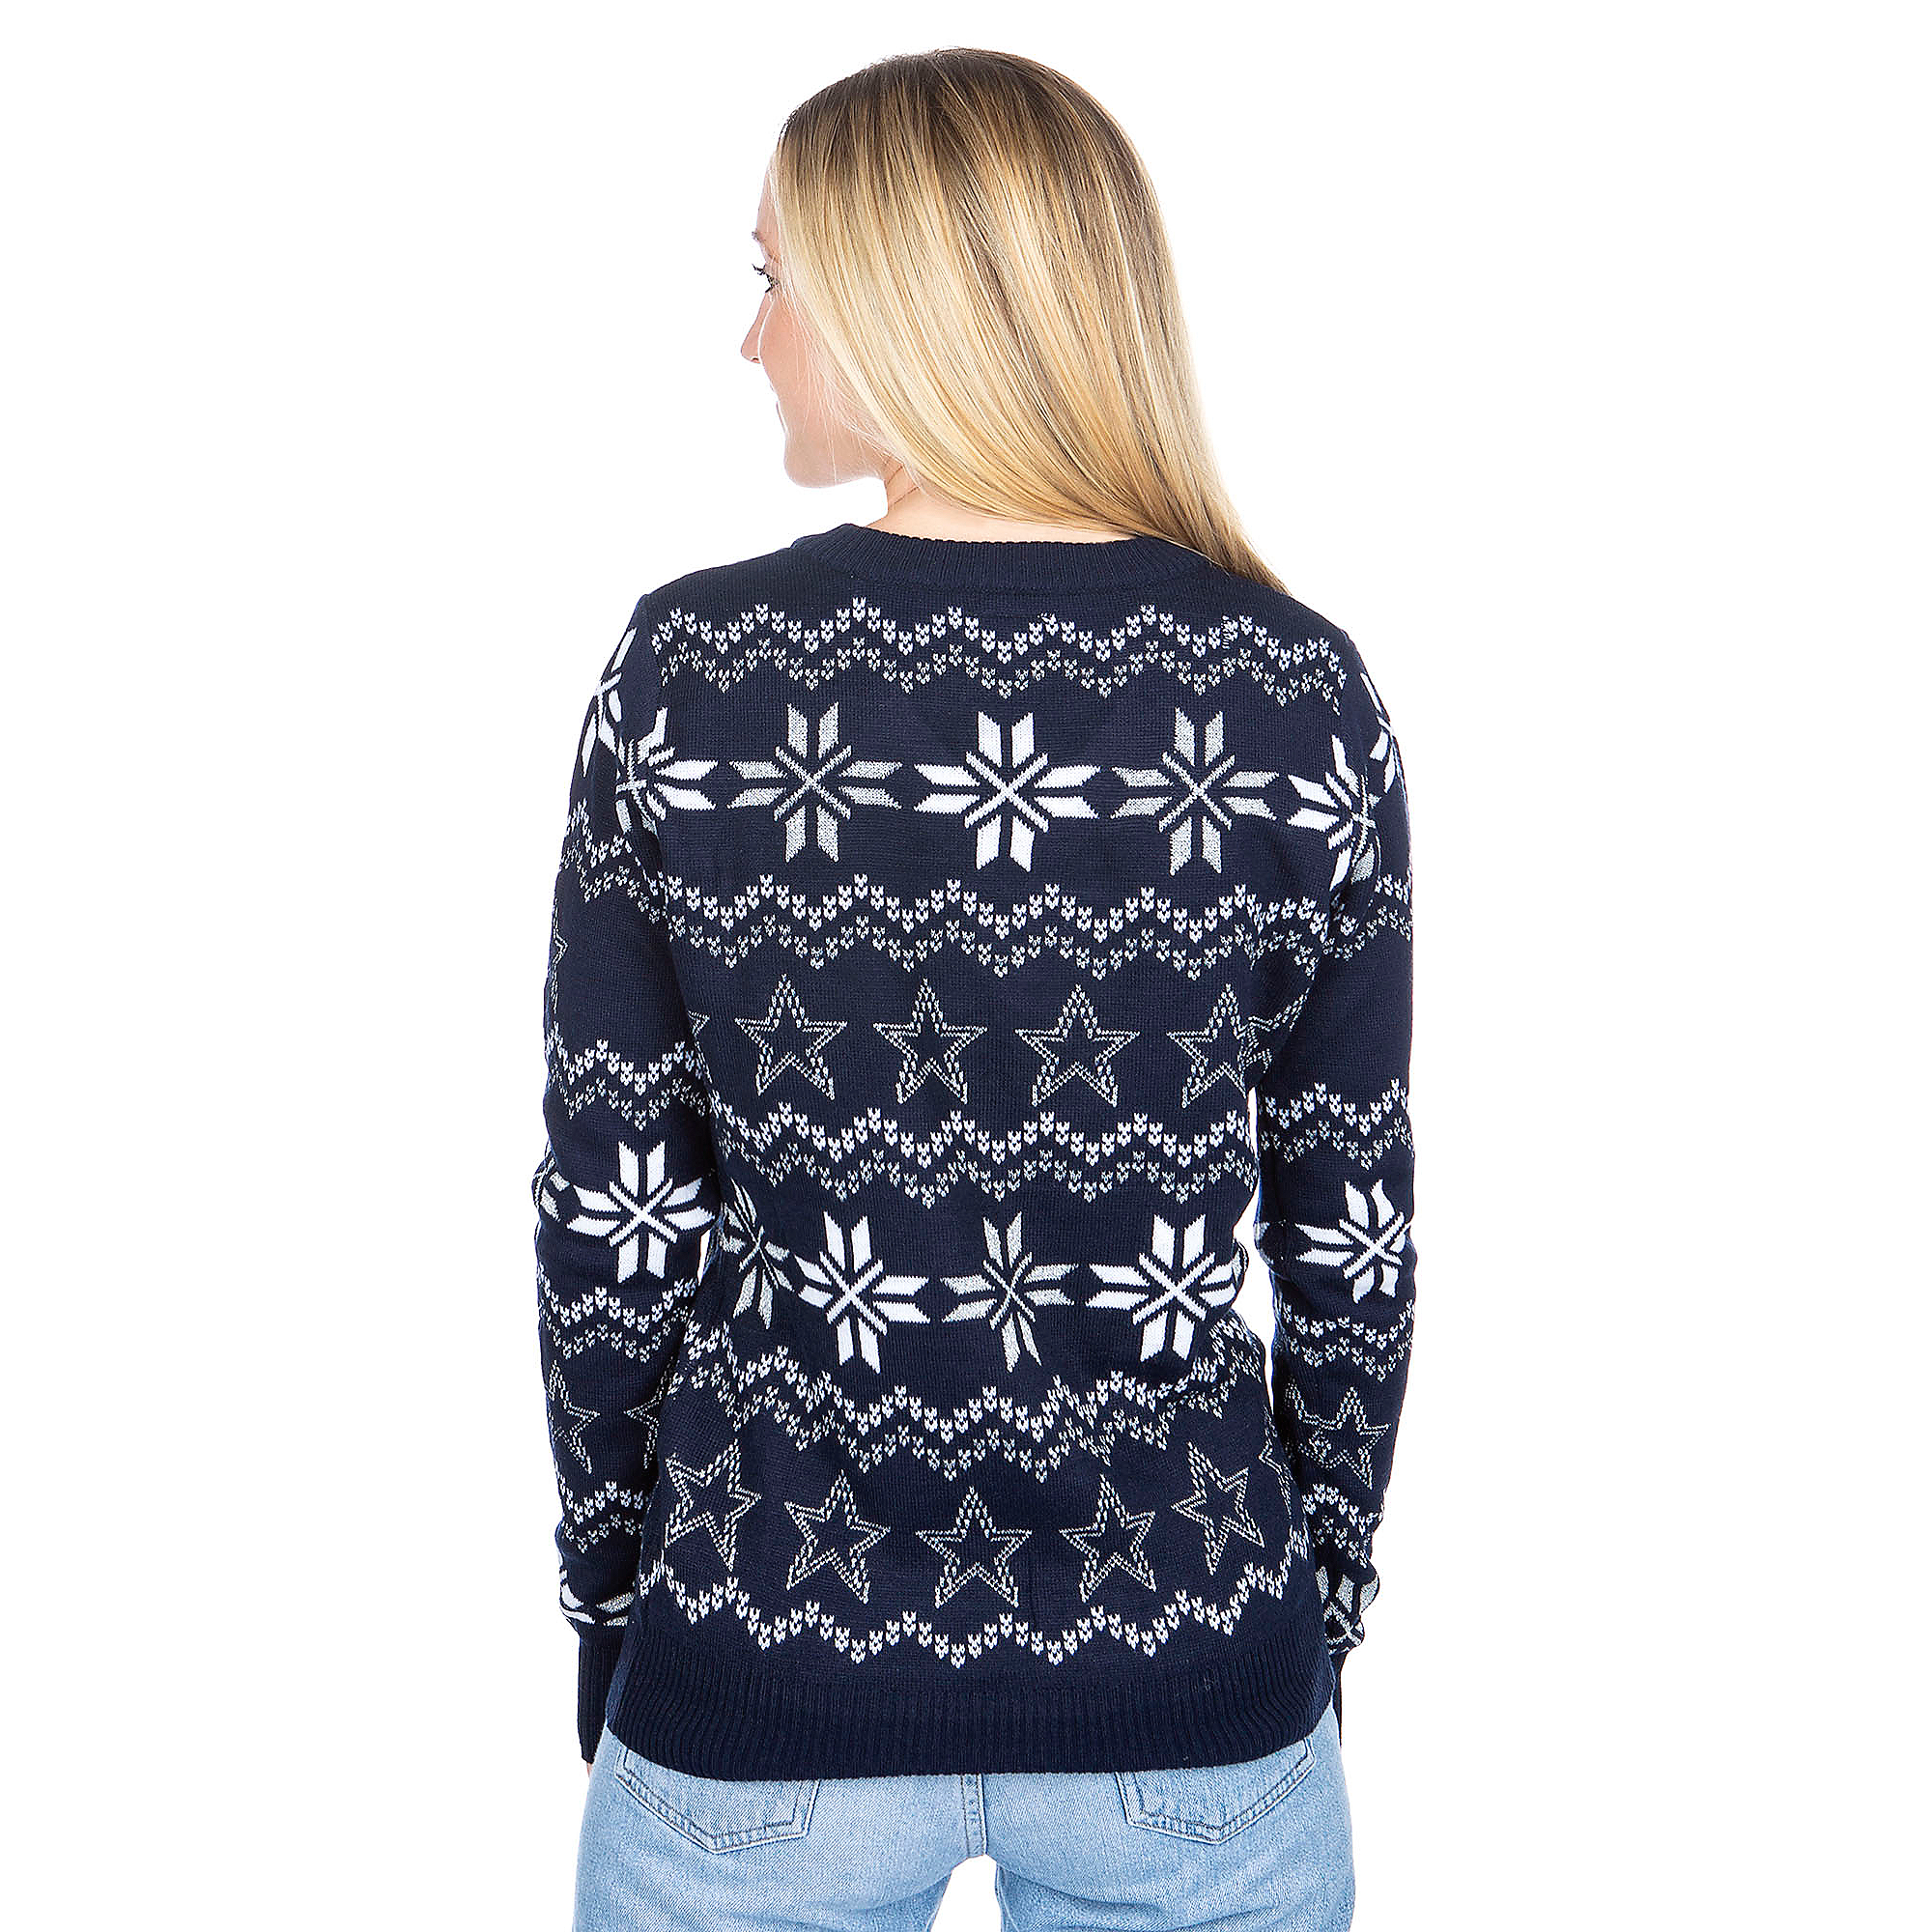 86794343026 Dallas Cowboys Womens Light Up Bluetooth Ugly Sweater